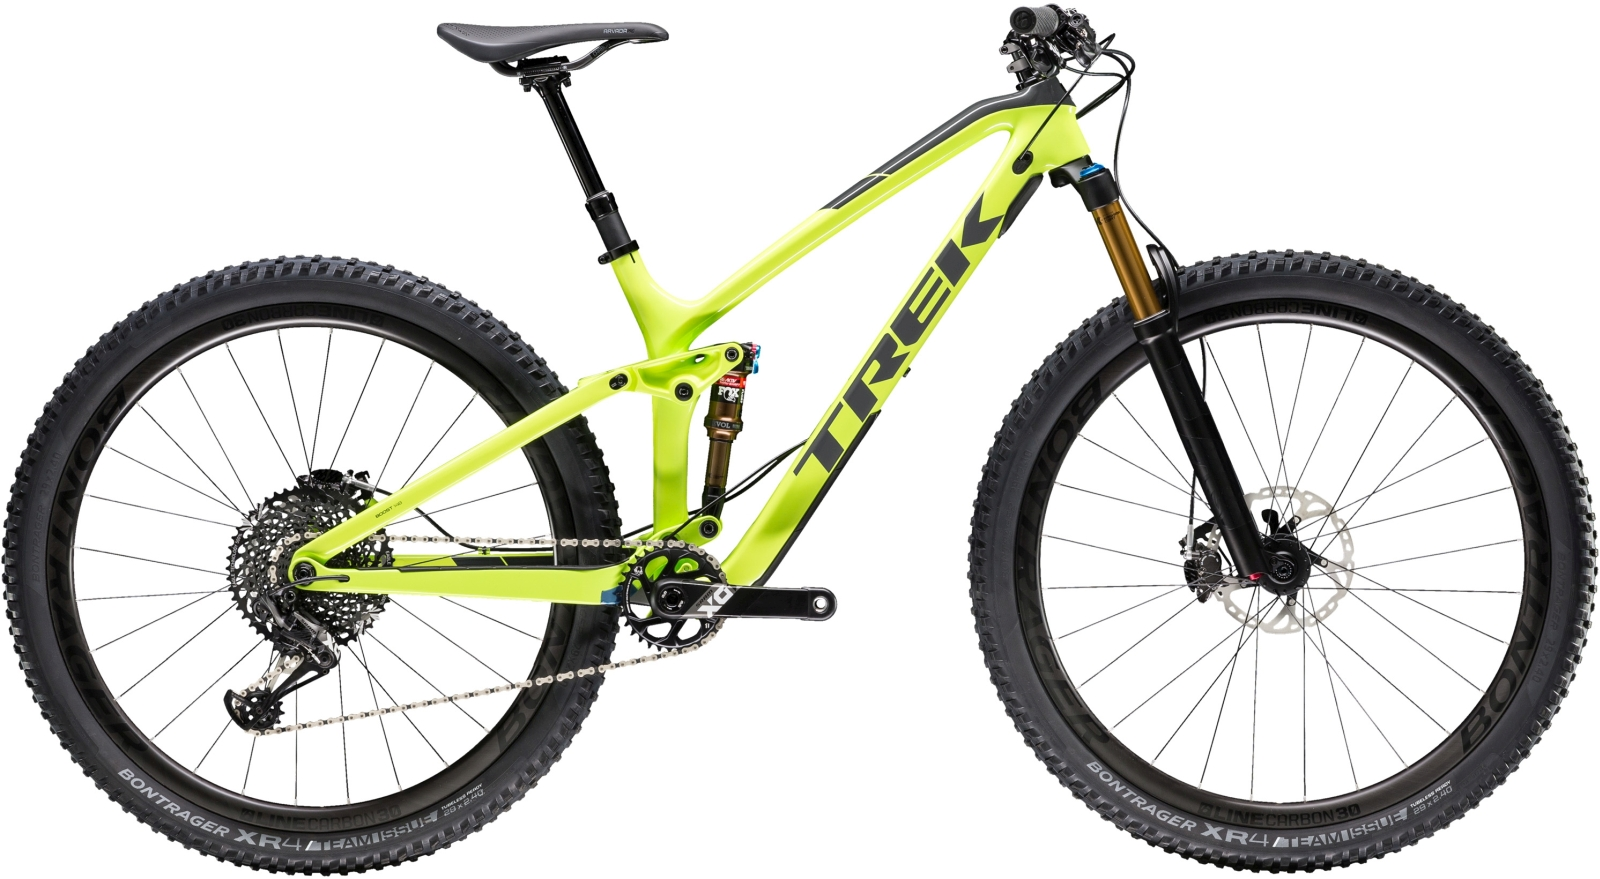 Trek Fuel EX 9.9 29 - Volt/Solid Charcoal 21.5